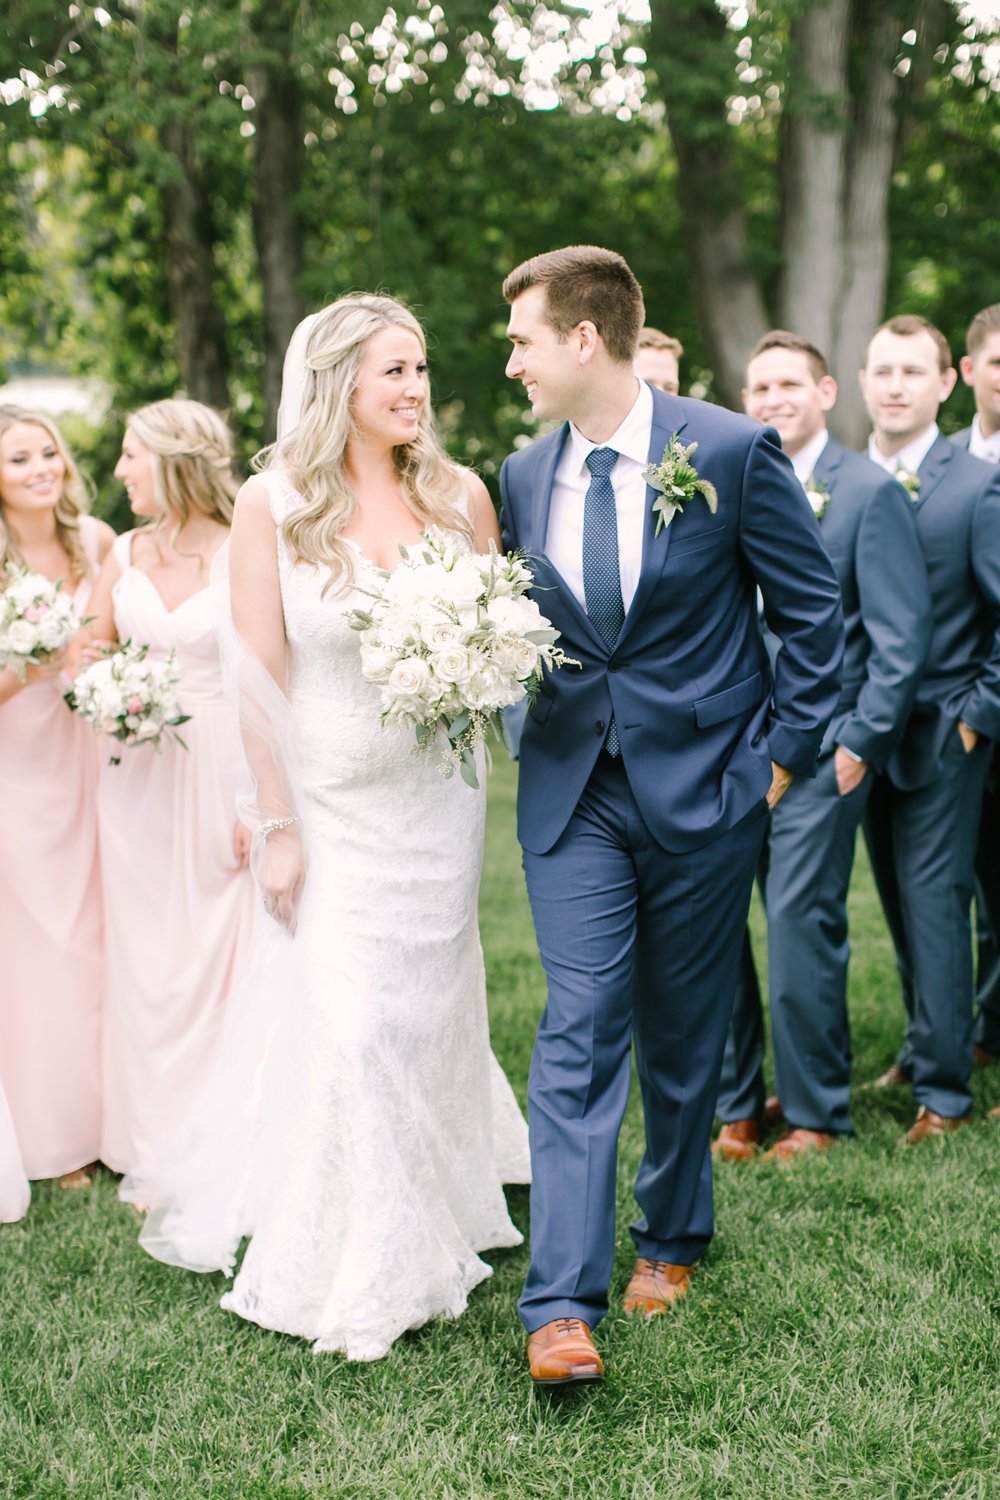 Love&LightPhotographs_Kate&Eli_Wedding_Preview-36.jpg